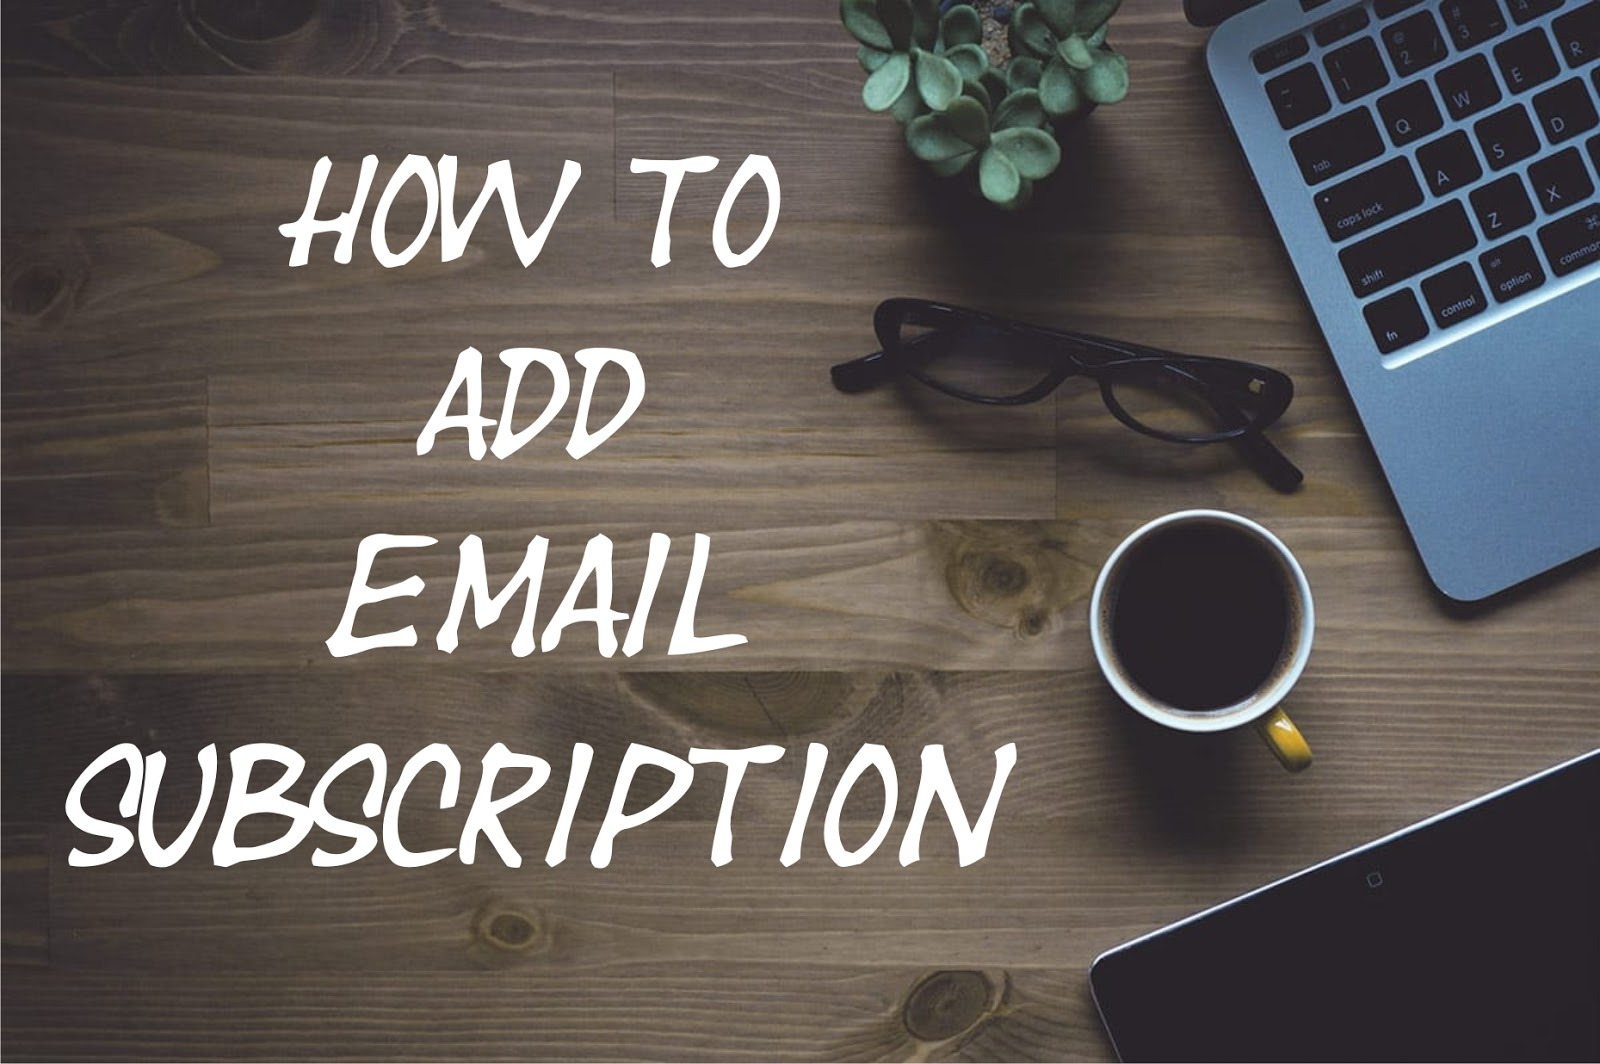 How to add an email subscription?